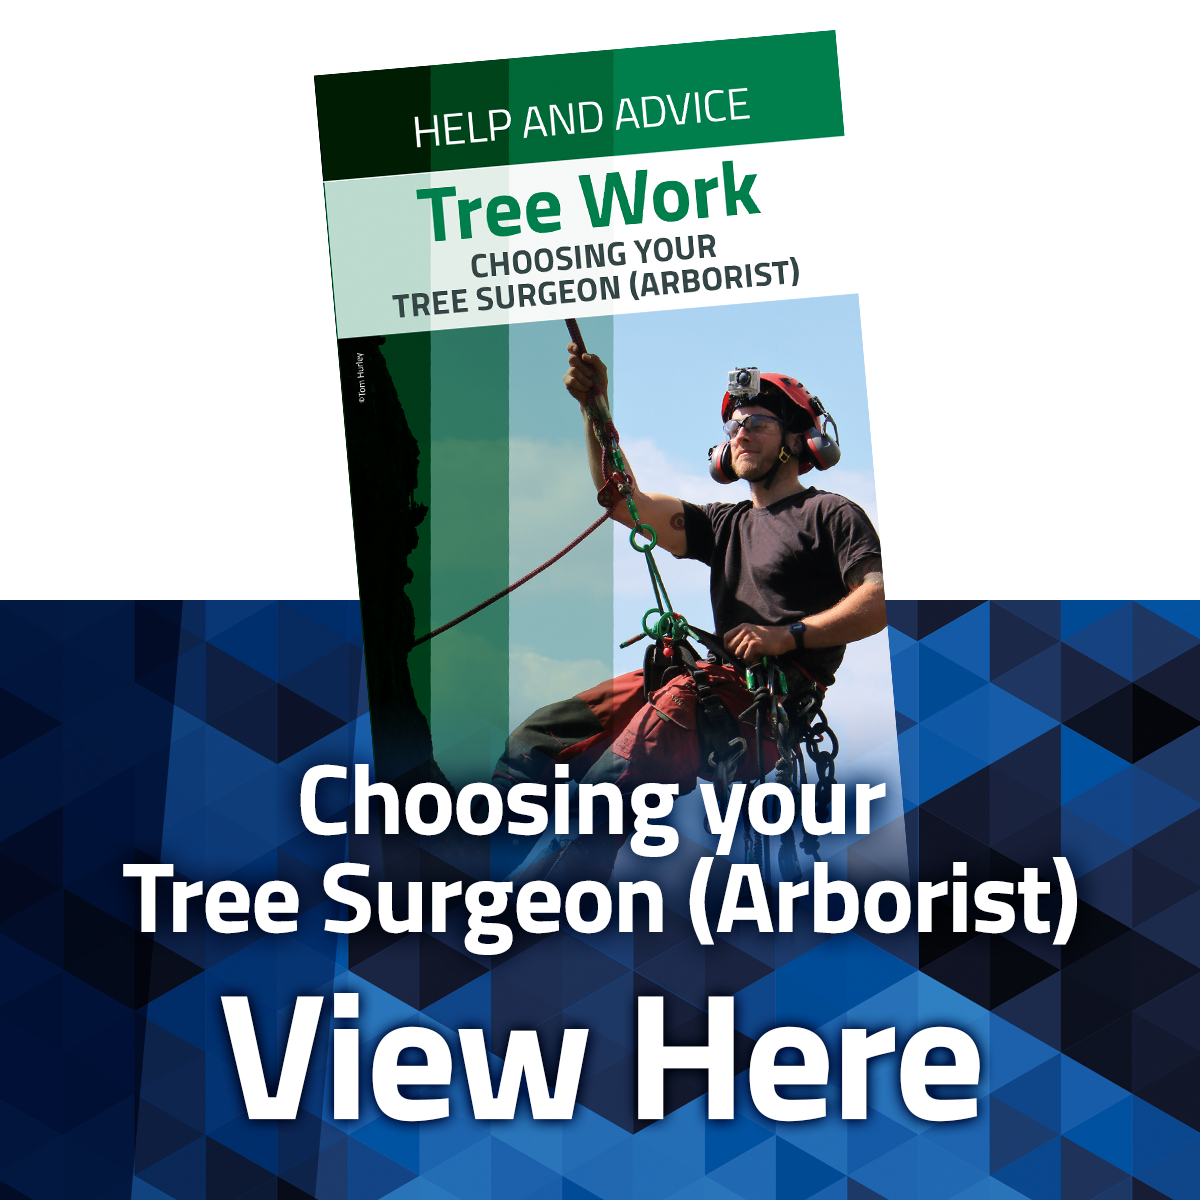 View the Choosing Your Arborist Leaflet